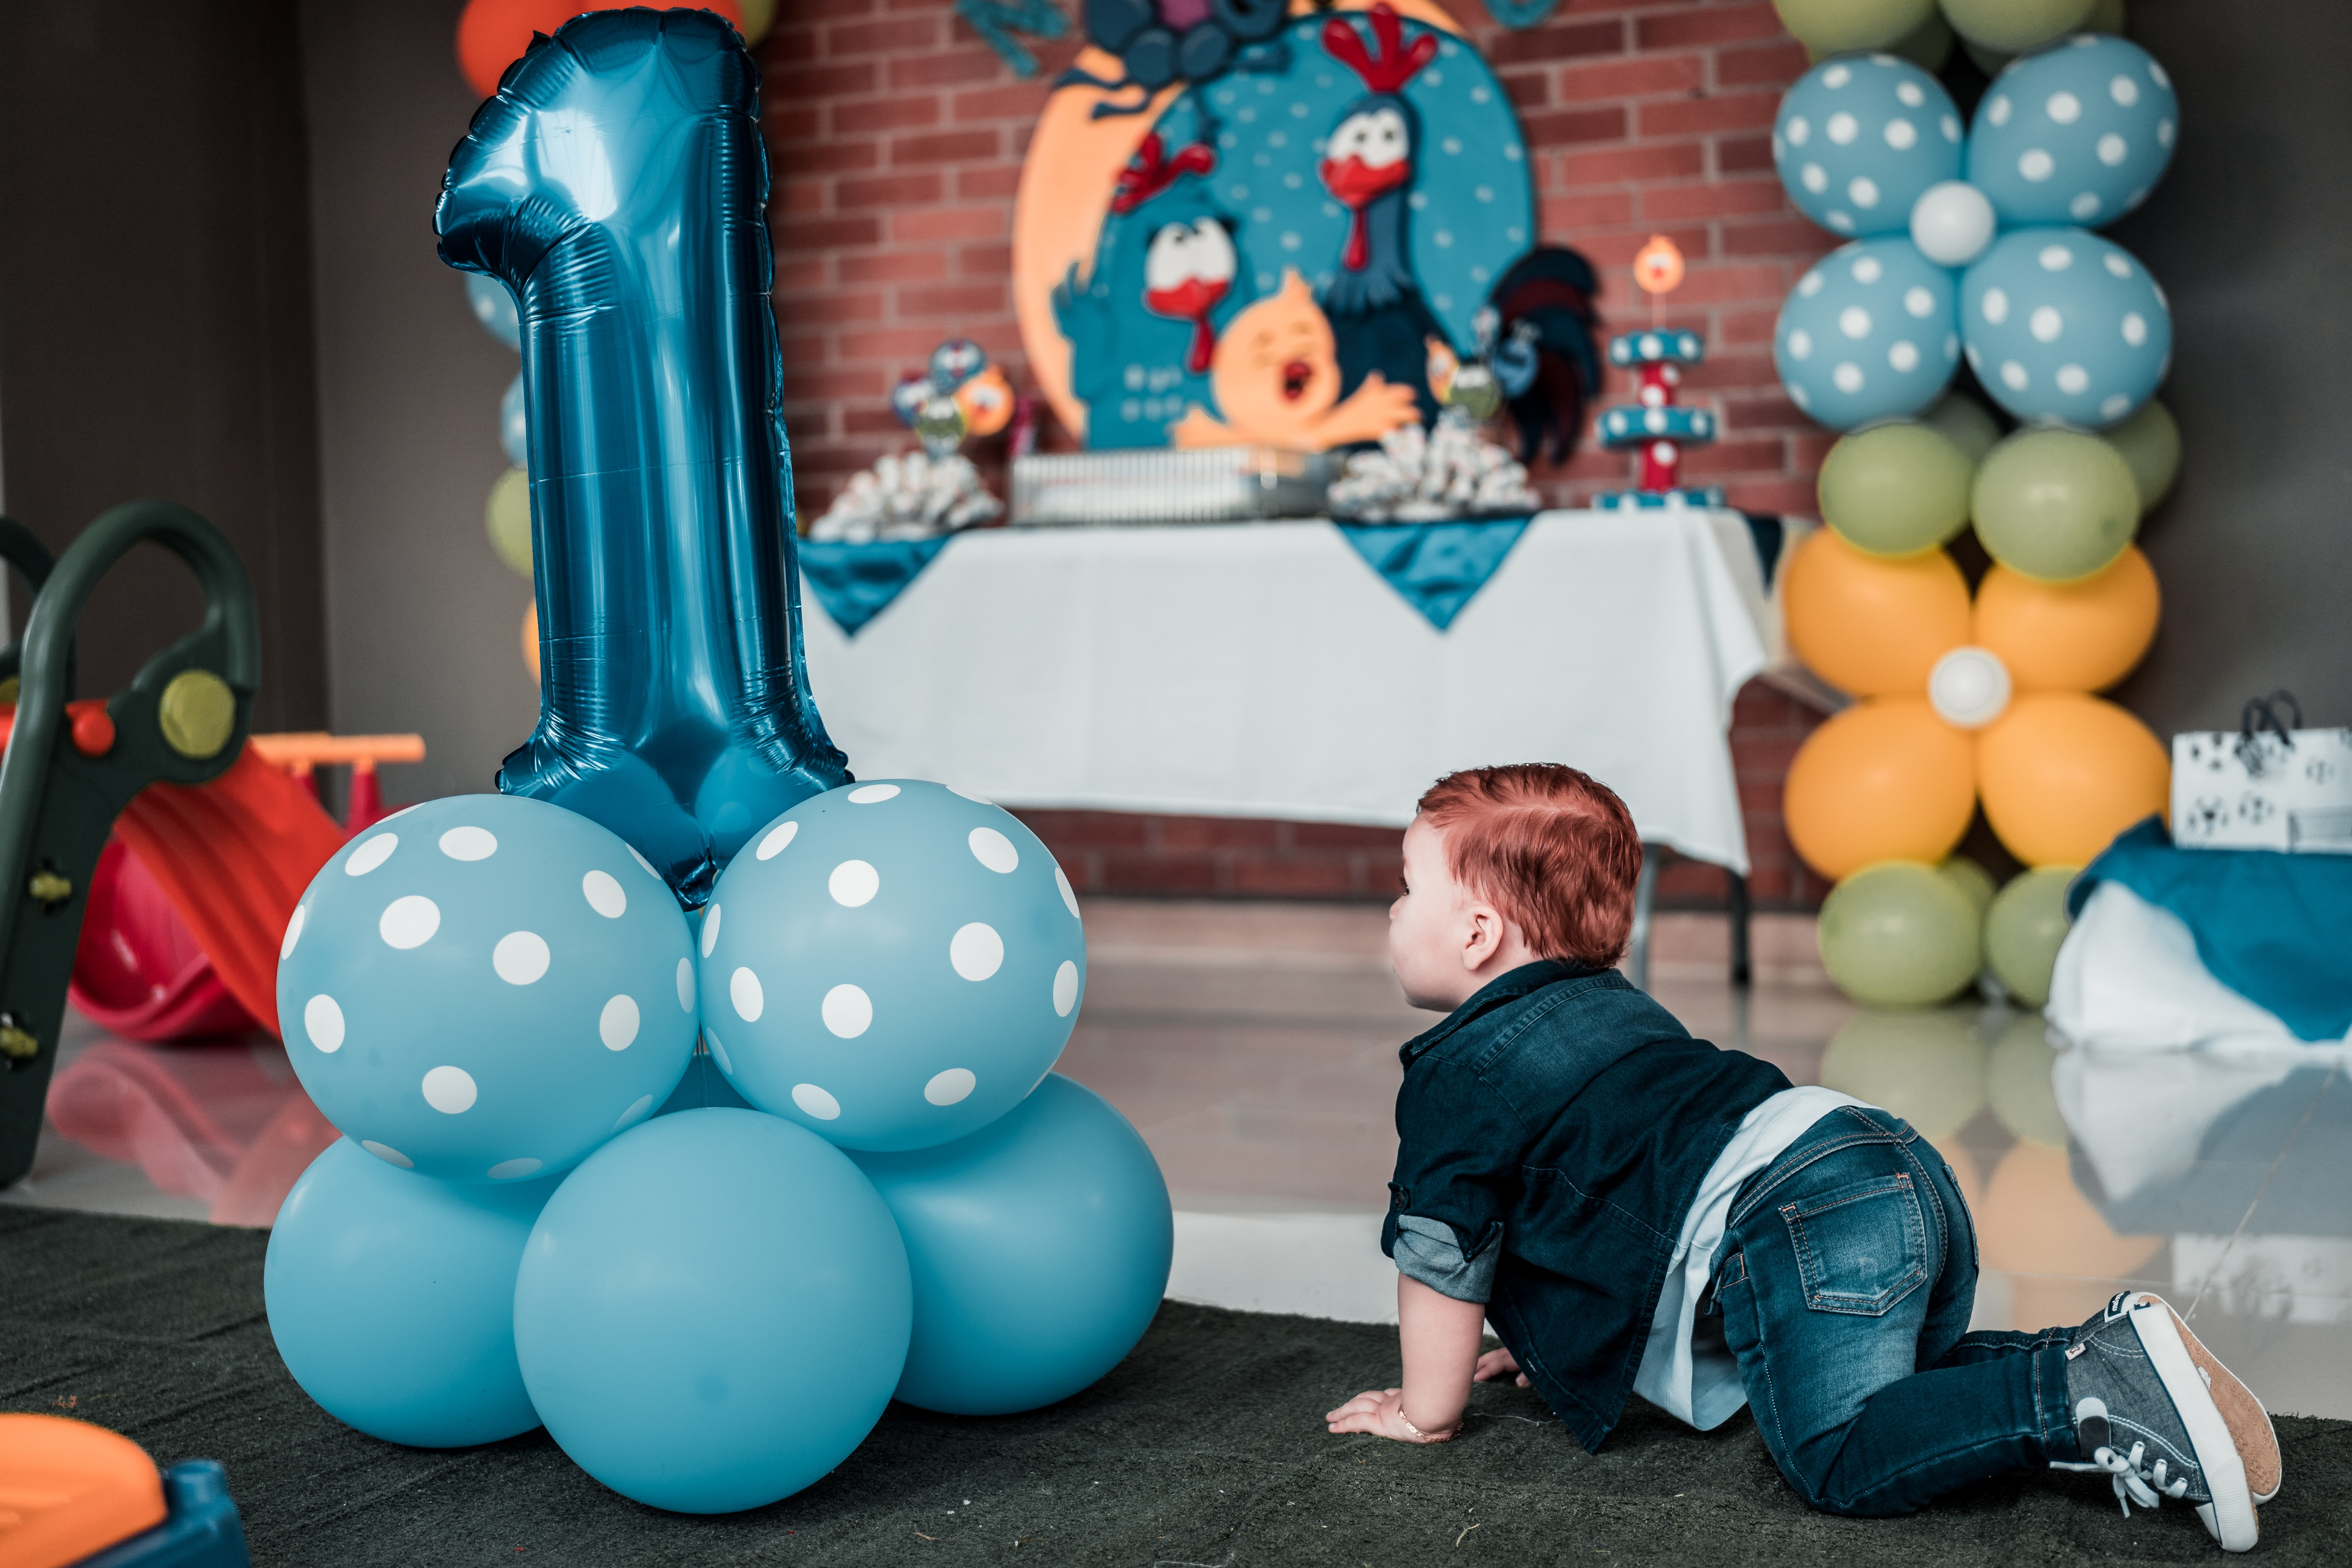 Tips for throwing a great kids' birthday party on a budget